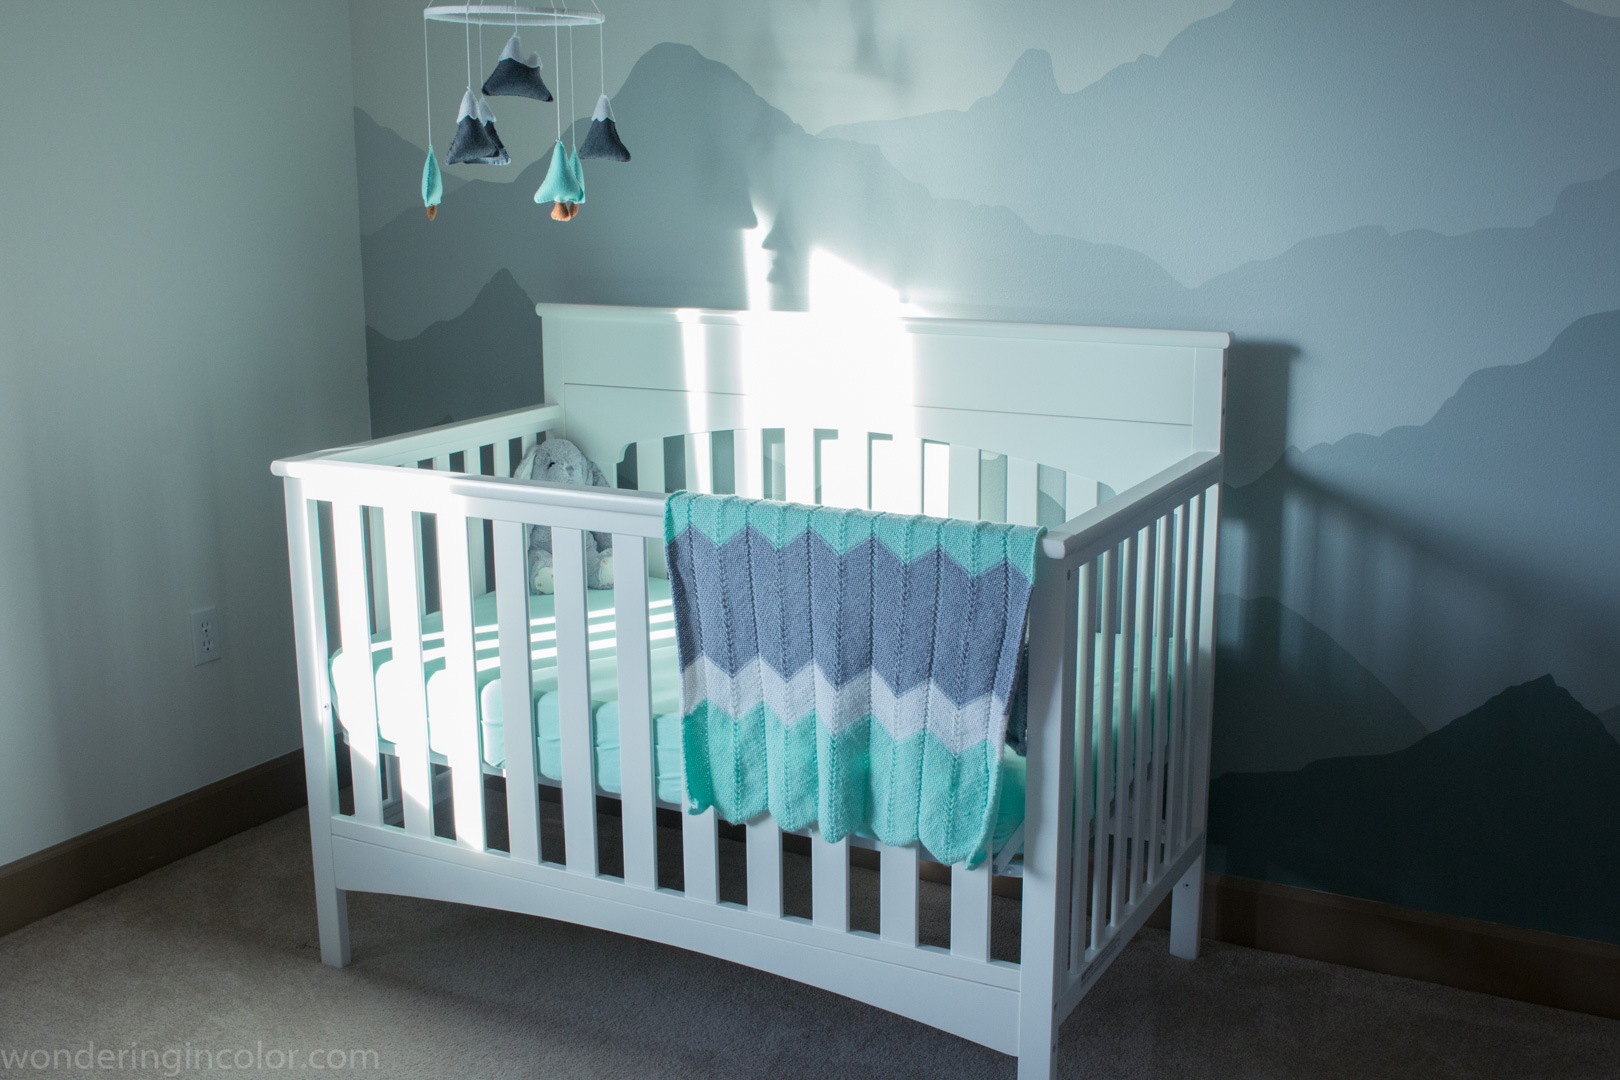 Pacific-northwest-inspired-nursery-styling (3 of 14).jpg